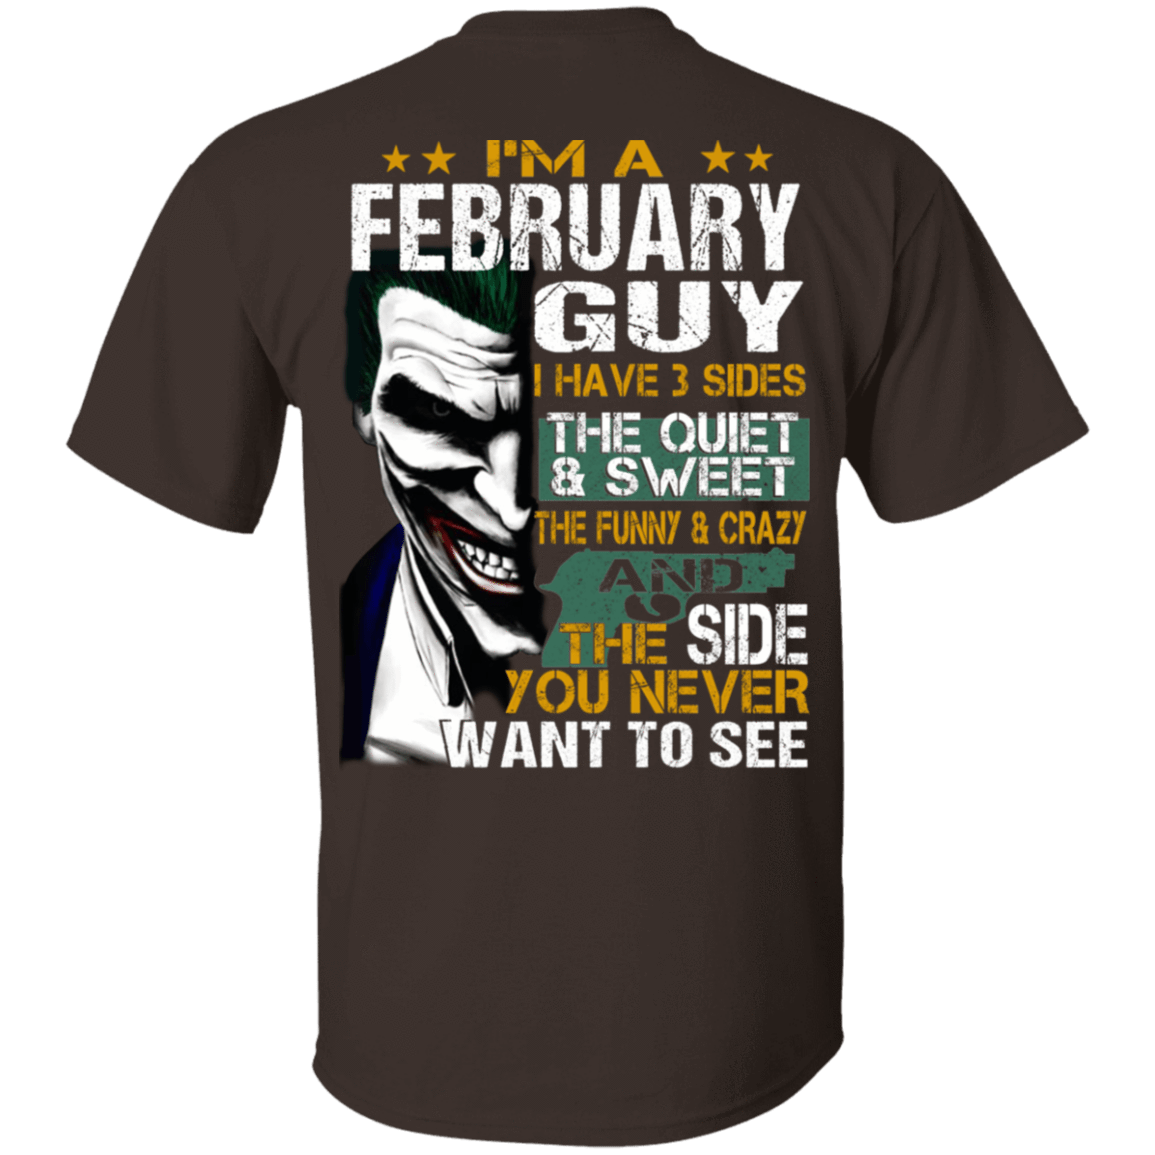 Joker February Guy Have 3 Sides The Quiet And Sweet T-Shirts, Hoodies 1049-9956-81692475-48152 - Tee Ript